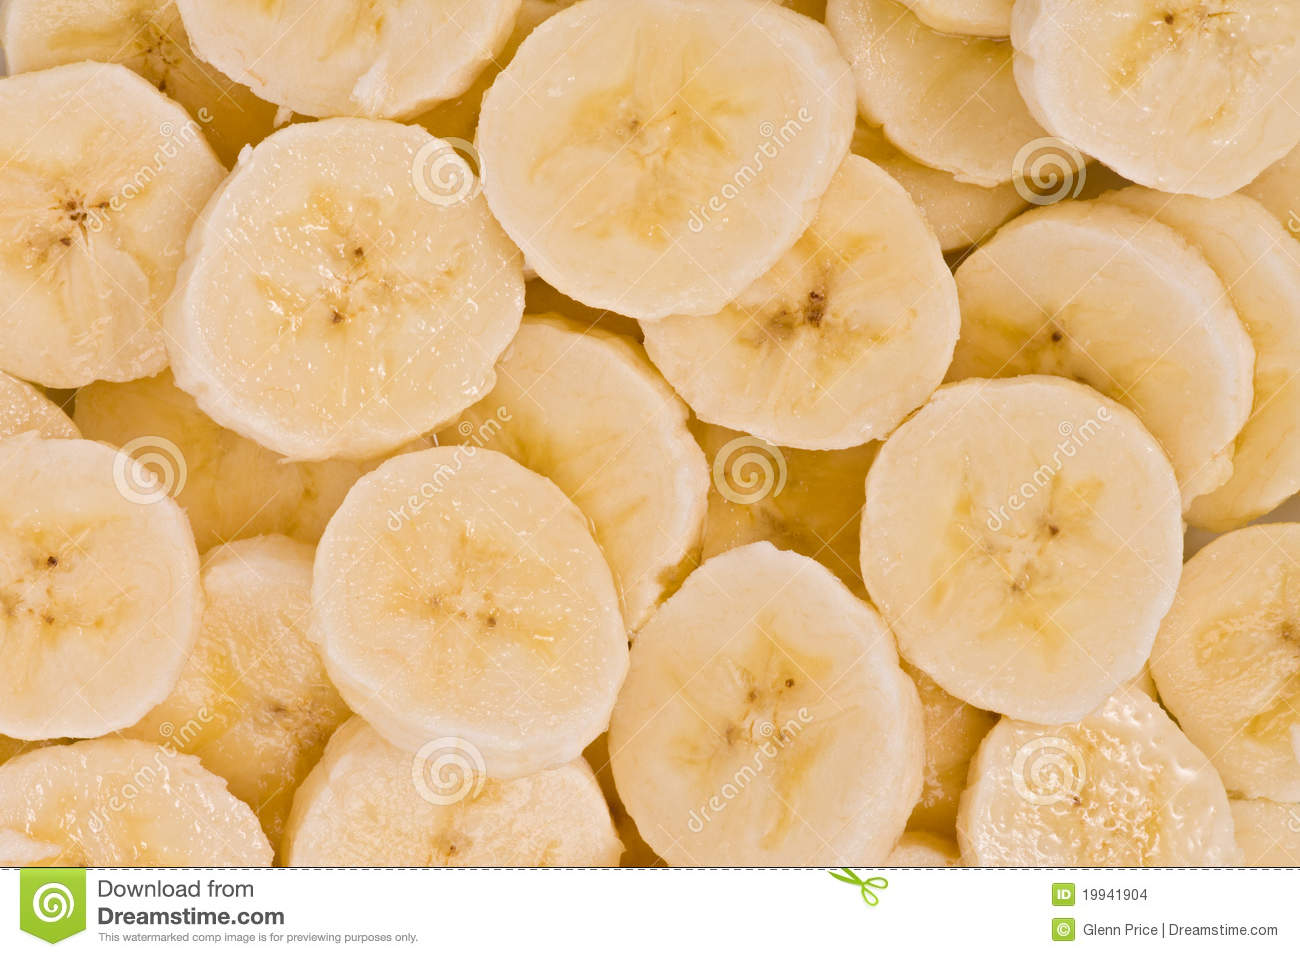 Banana Slices (Musa Acuminata) Stock Images - Image: 19941904